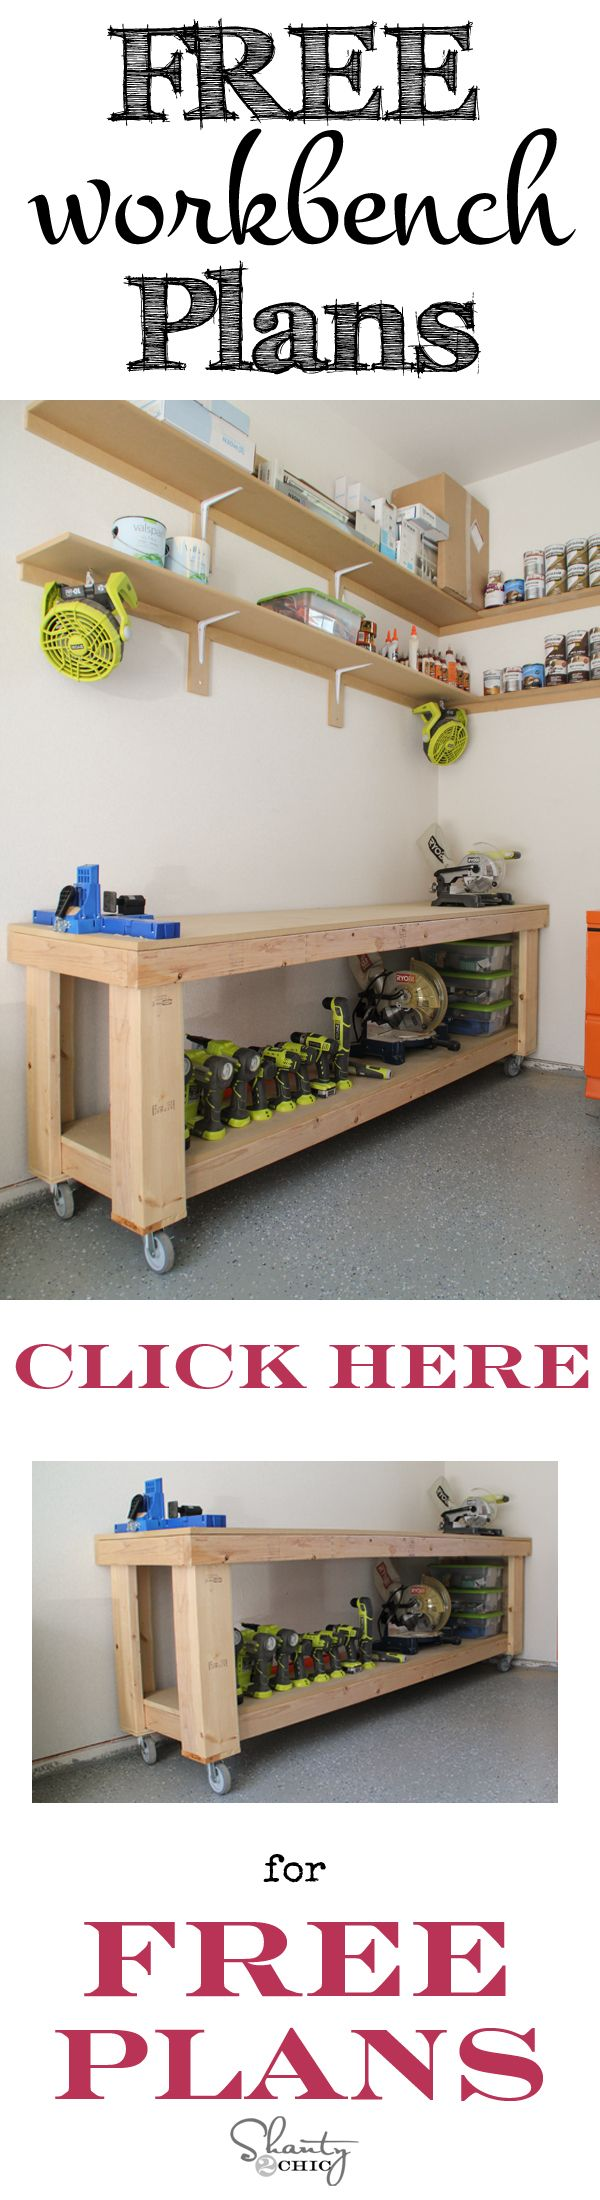 DIY Workbench - Free Plans